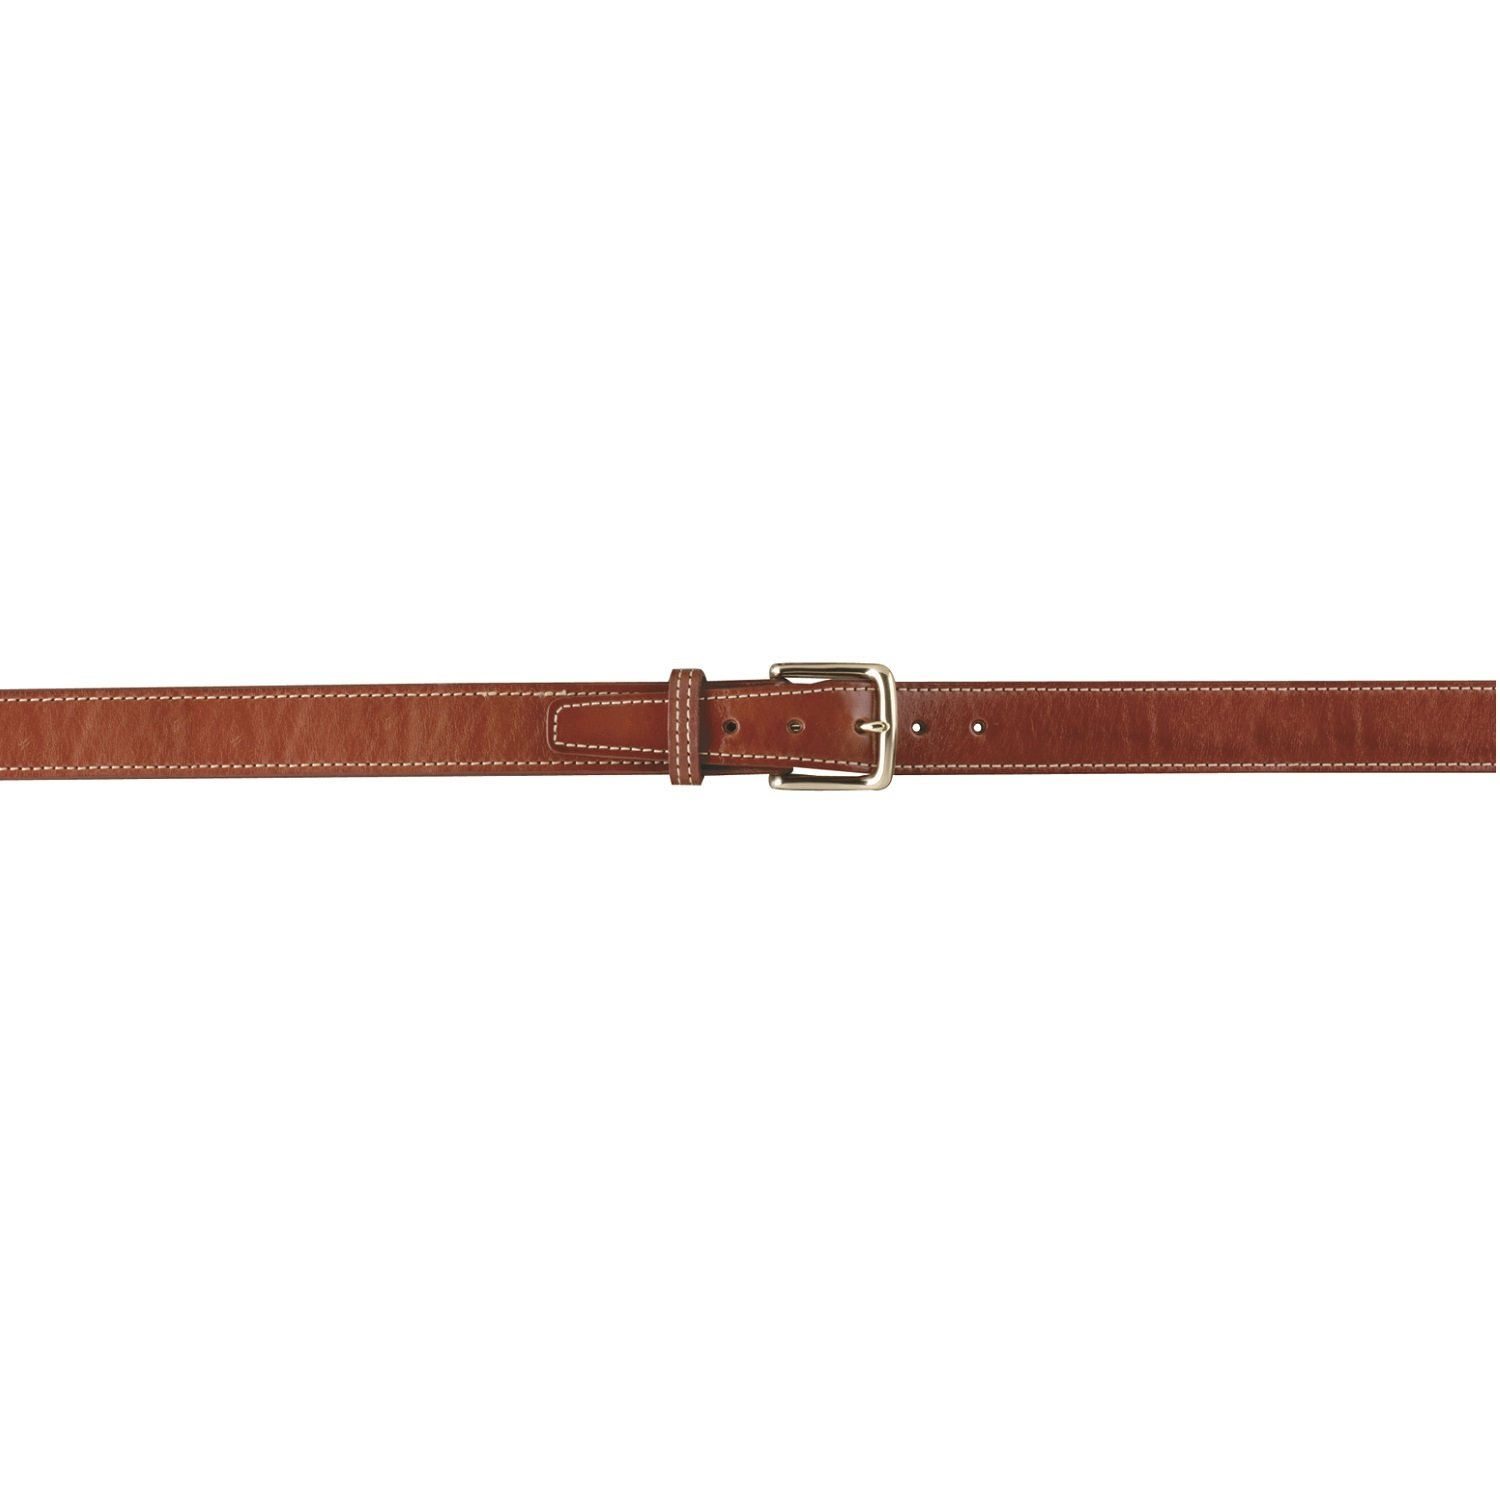 Gould & Goodrich 1 1/4'' Shooter's Belt, Chestnut Brown, Size 32